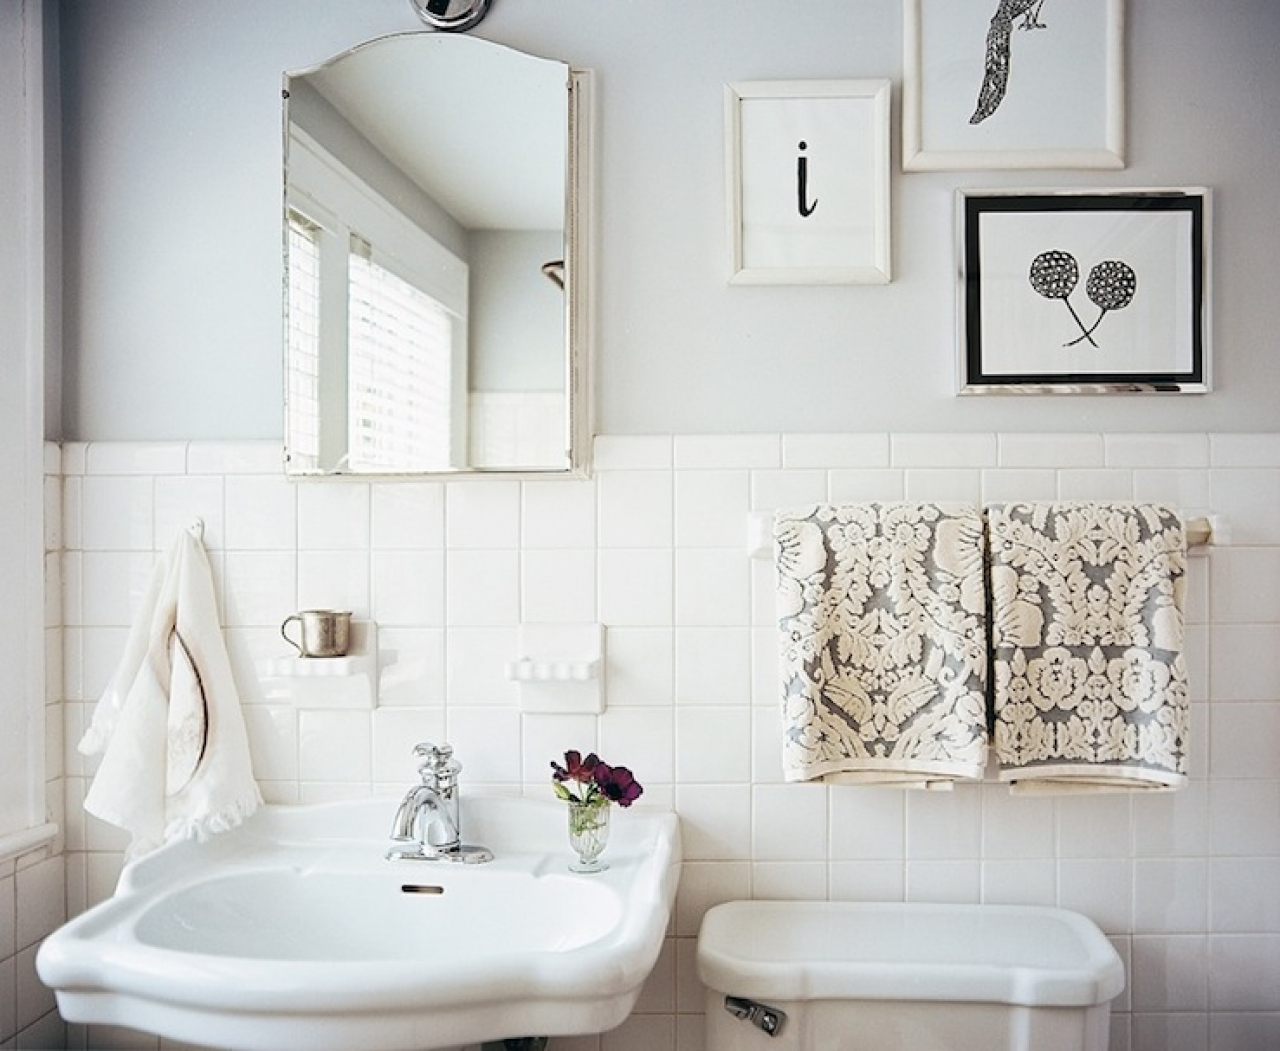 Bathroom Design Grey And White Gray Walls Beautiful Vintage Bathroom With Amazing And Old Bathroom